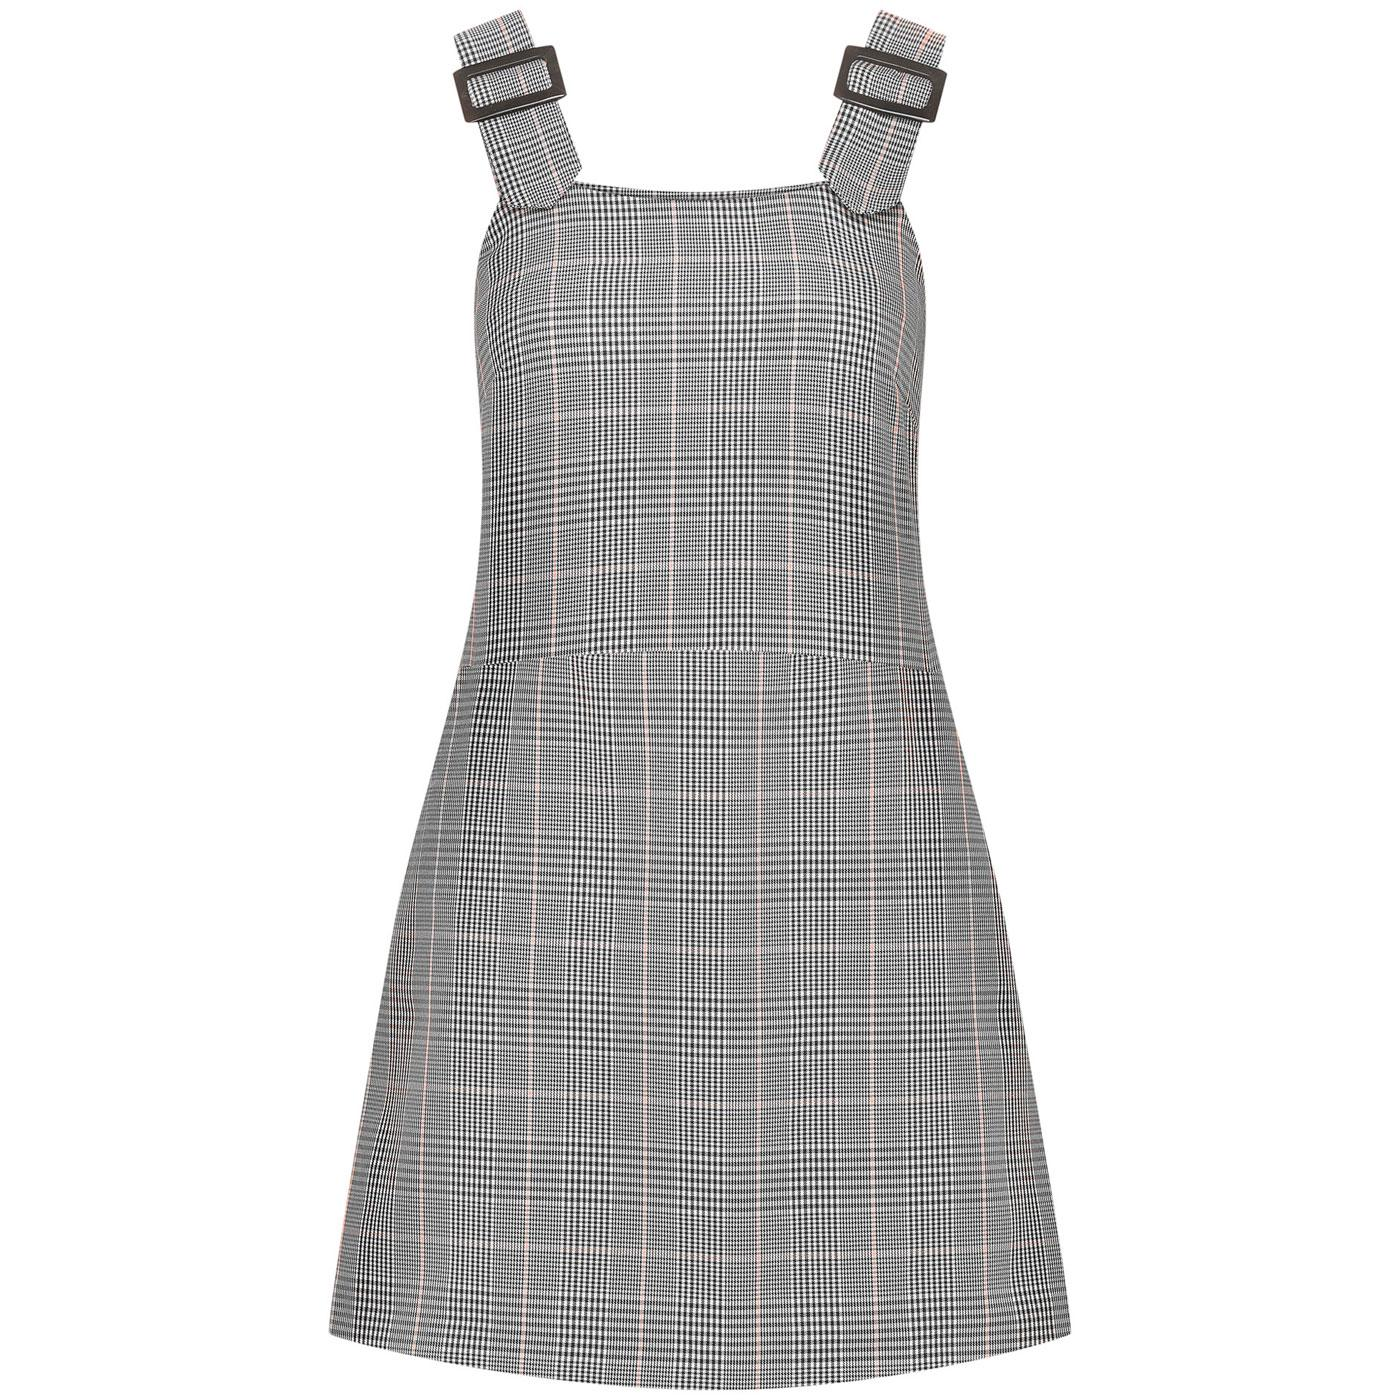 Pic Nic MADEMOISELLE YEYE Mod Check Pinafore Dress